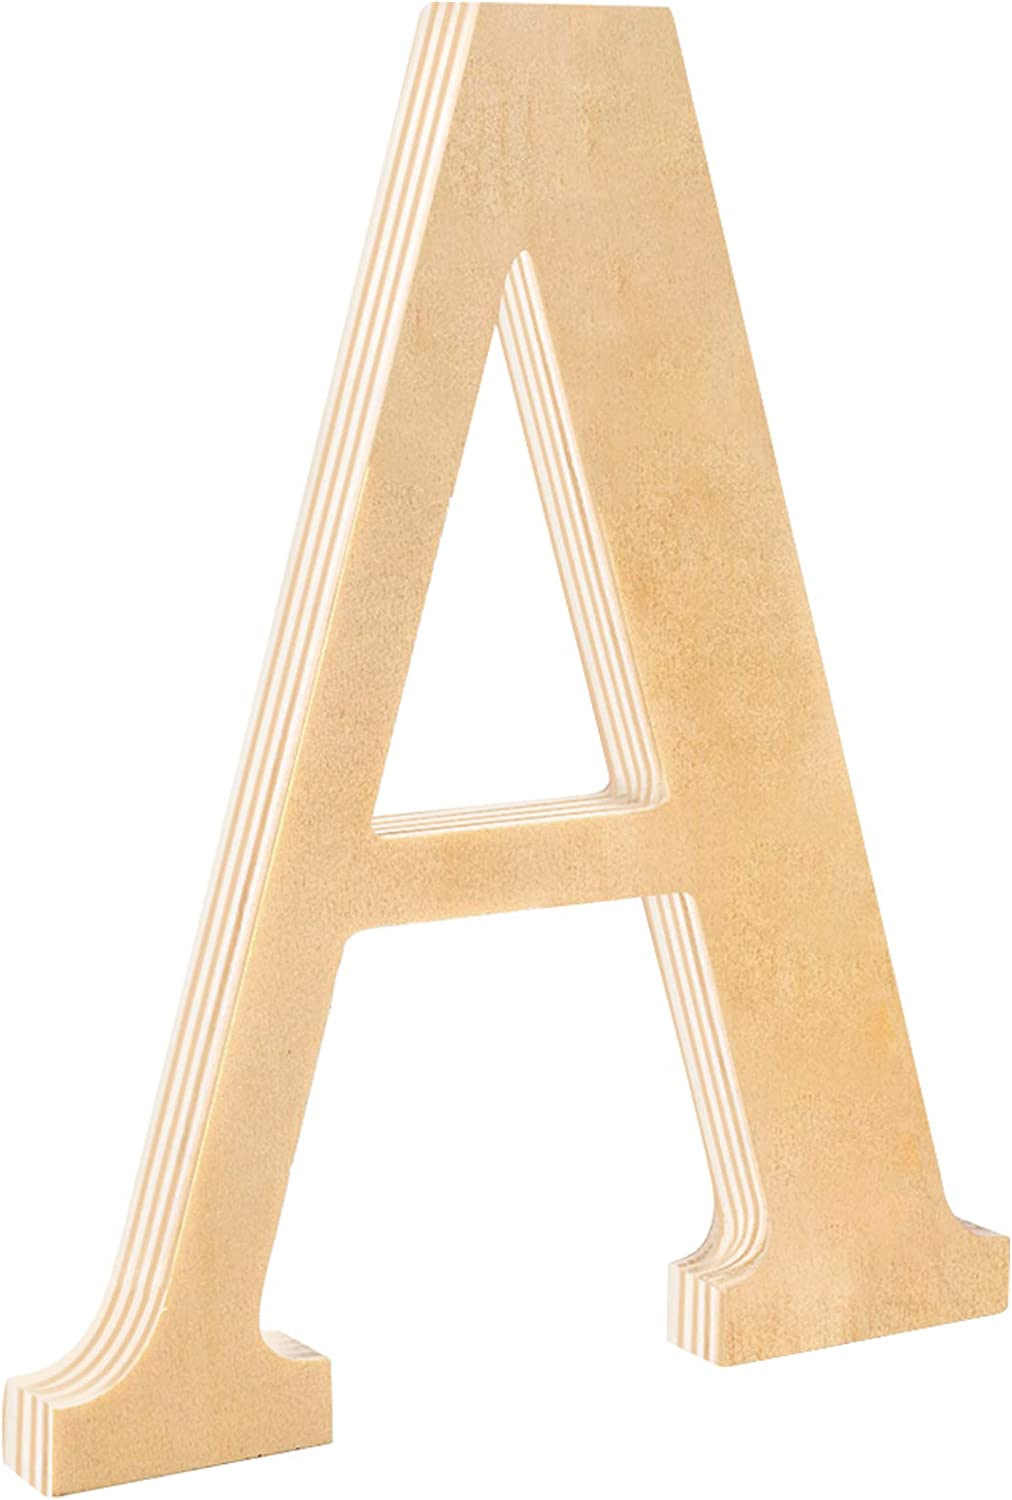 """Wood Letters A, HNYYZL Natural Unfinished 8 inch Wooden Letter Decorative Craft Wooden Signs Thick, for Wedding, Party, Home Decor, Wall Hanger, DIY Craft, Child Early Education(0.55"""" Thick, 1 Pack)"""